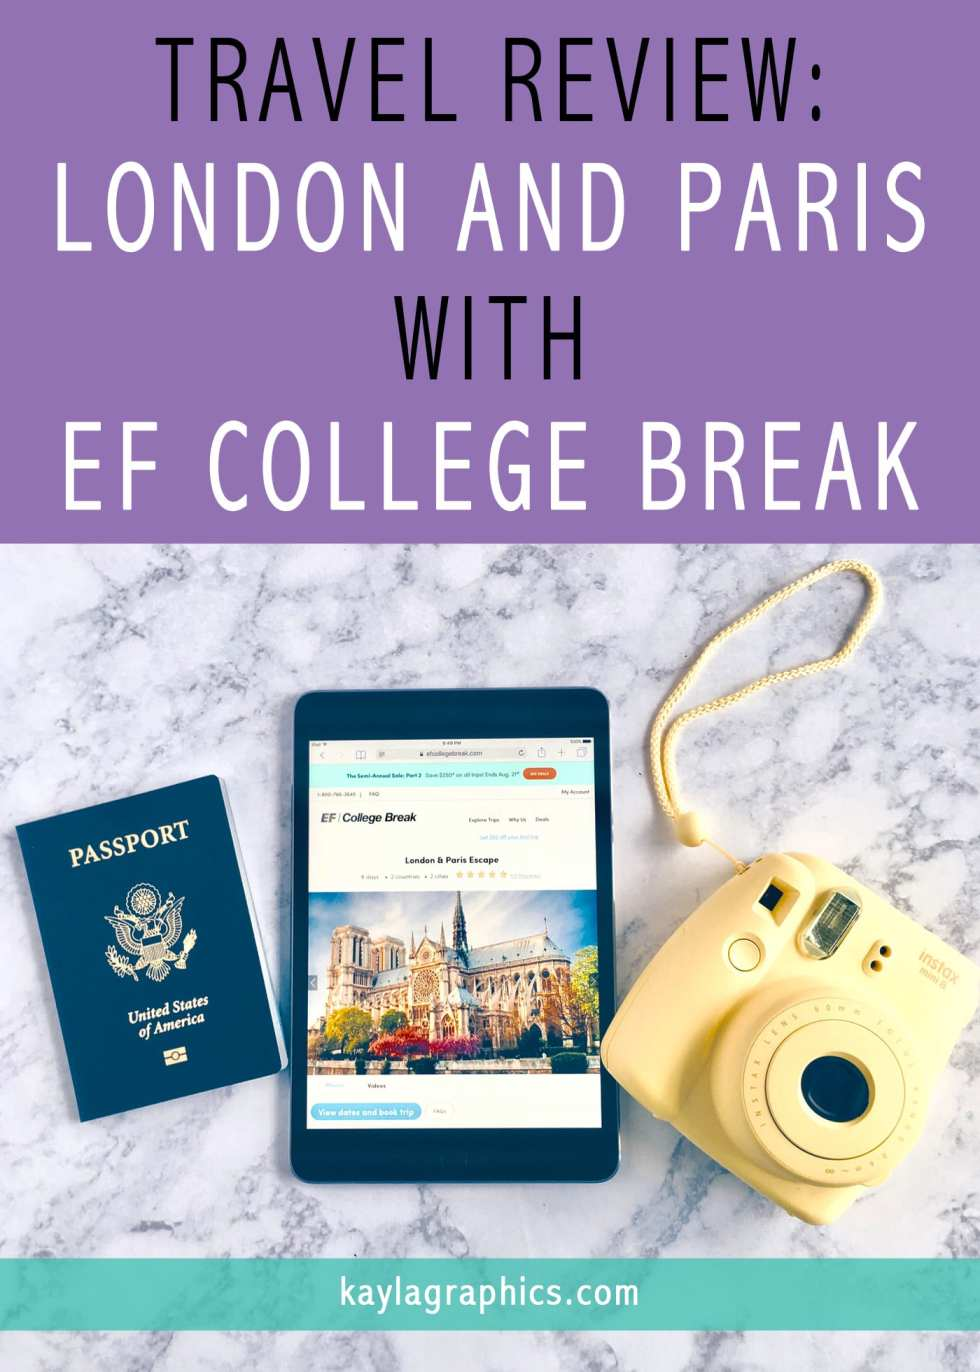 Travel Review London and Paris with efCollegeBreak